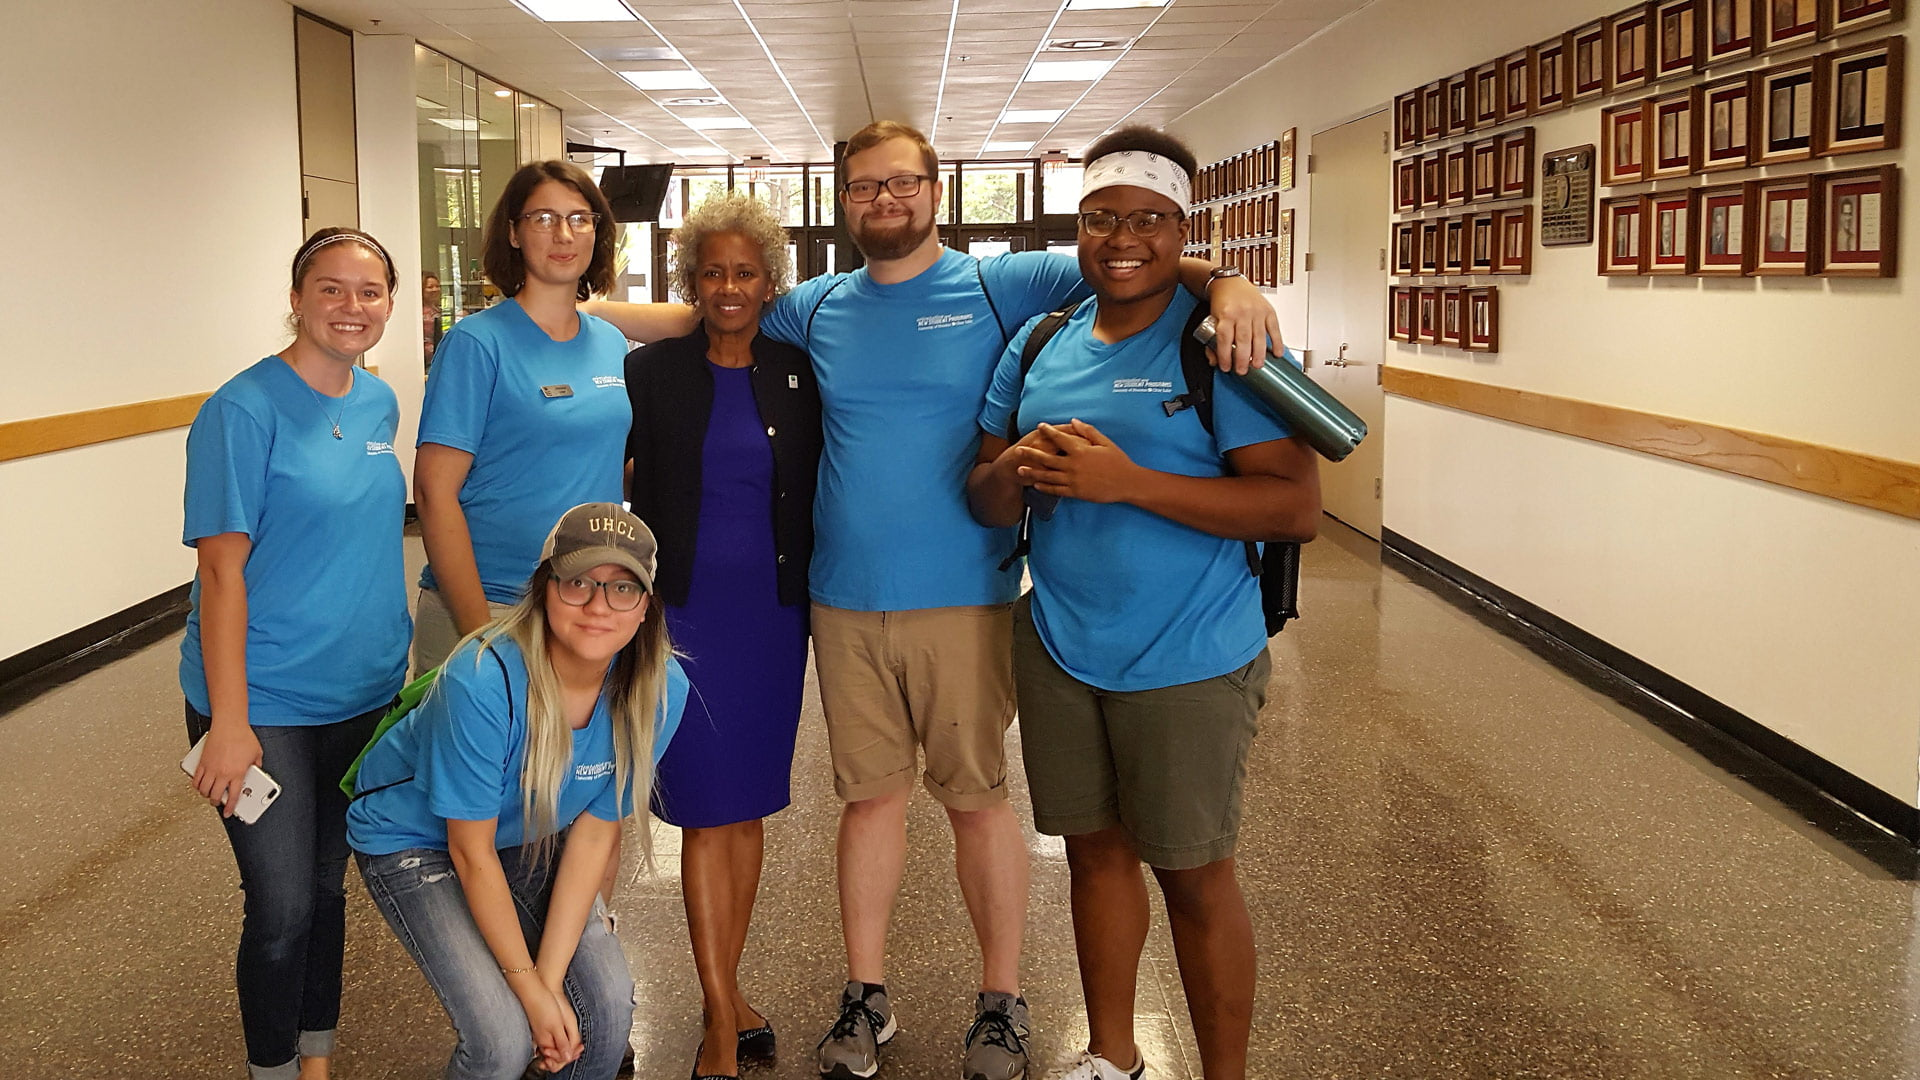 UHCL's Orientation Leaders gear up for Welcome Week